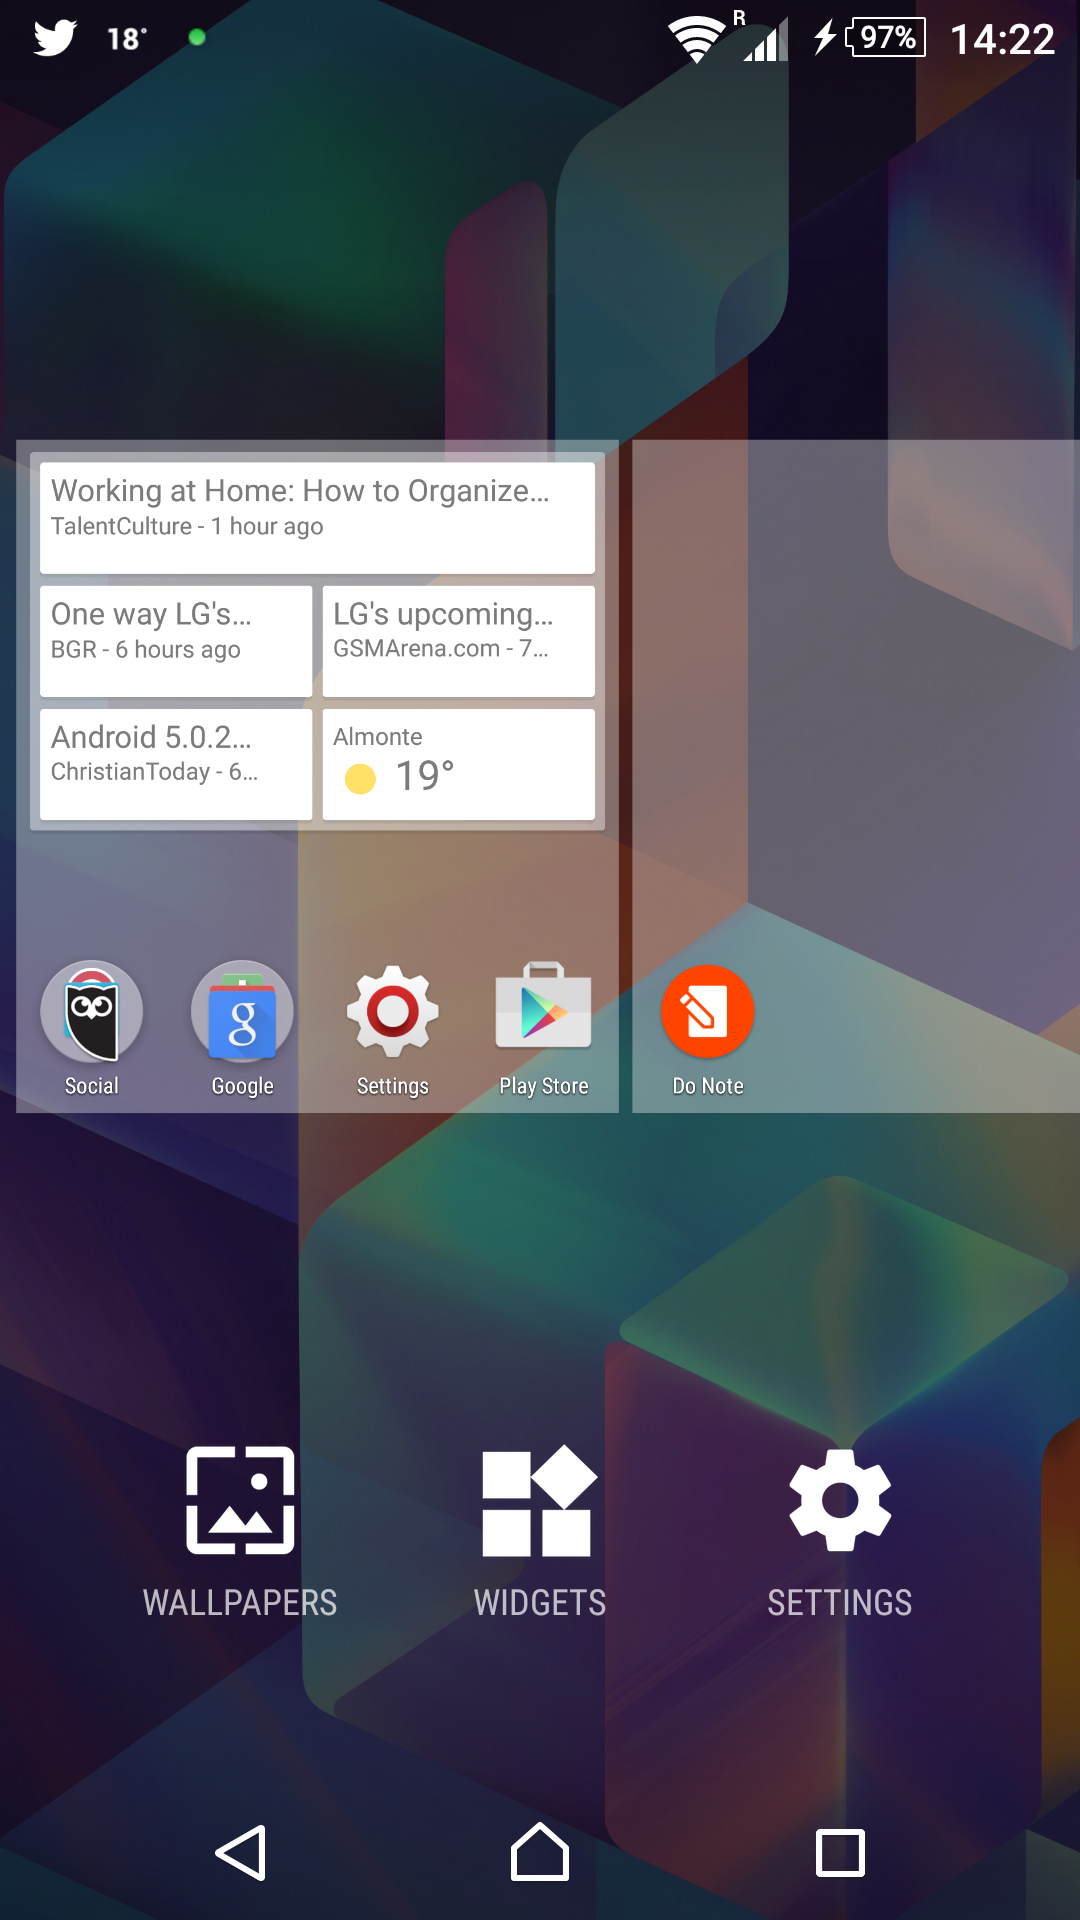 sony xperia z3 screenshot of wallpaper and widgets icons